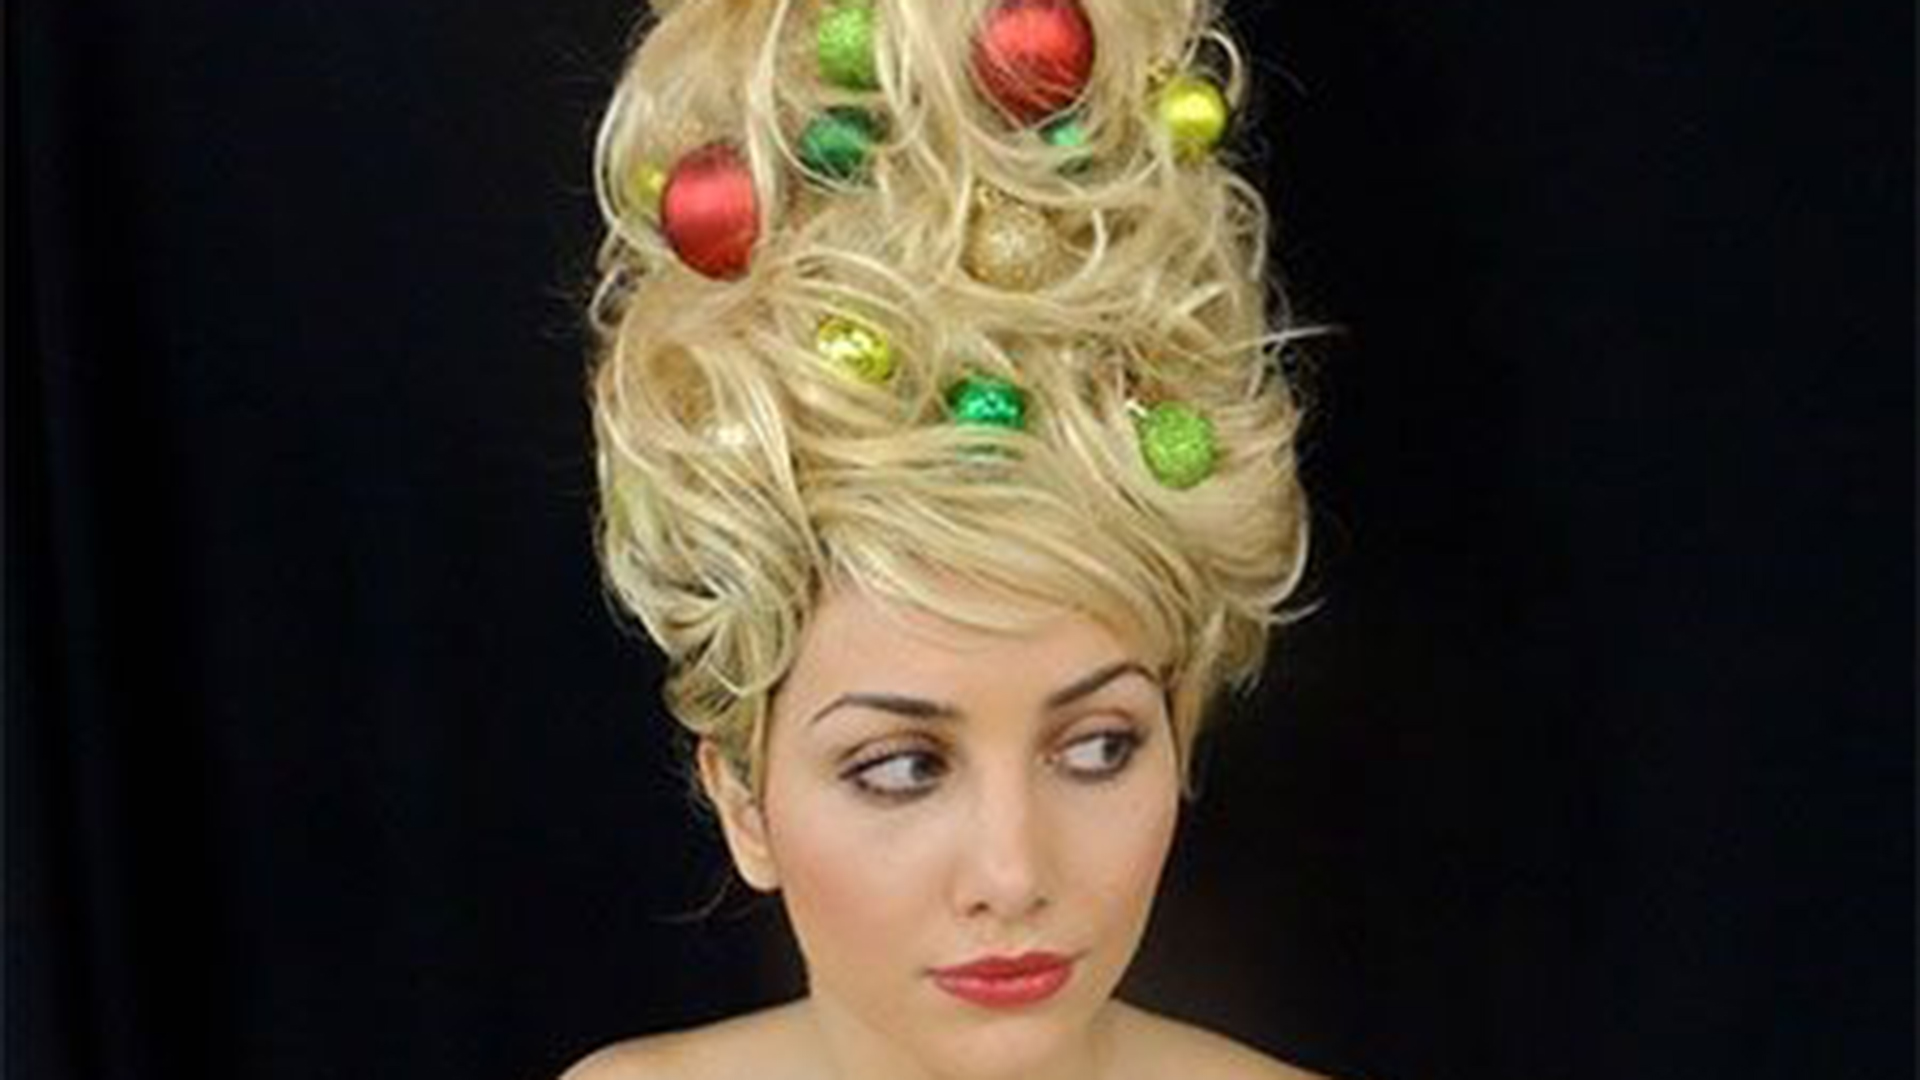 Christmas Tree Hair Is The New Holiday Trend